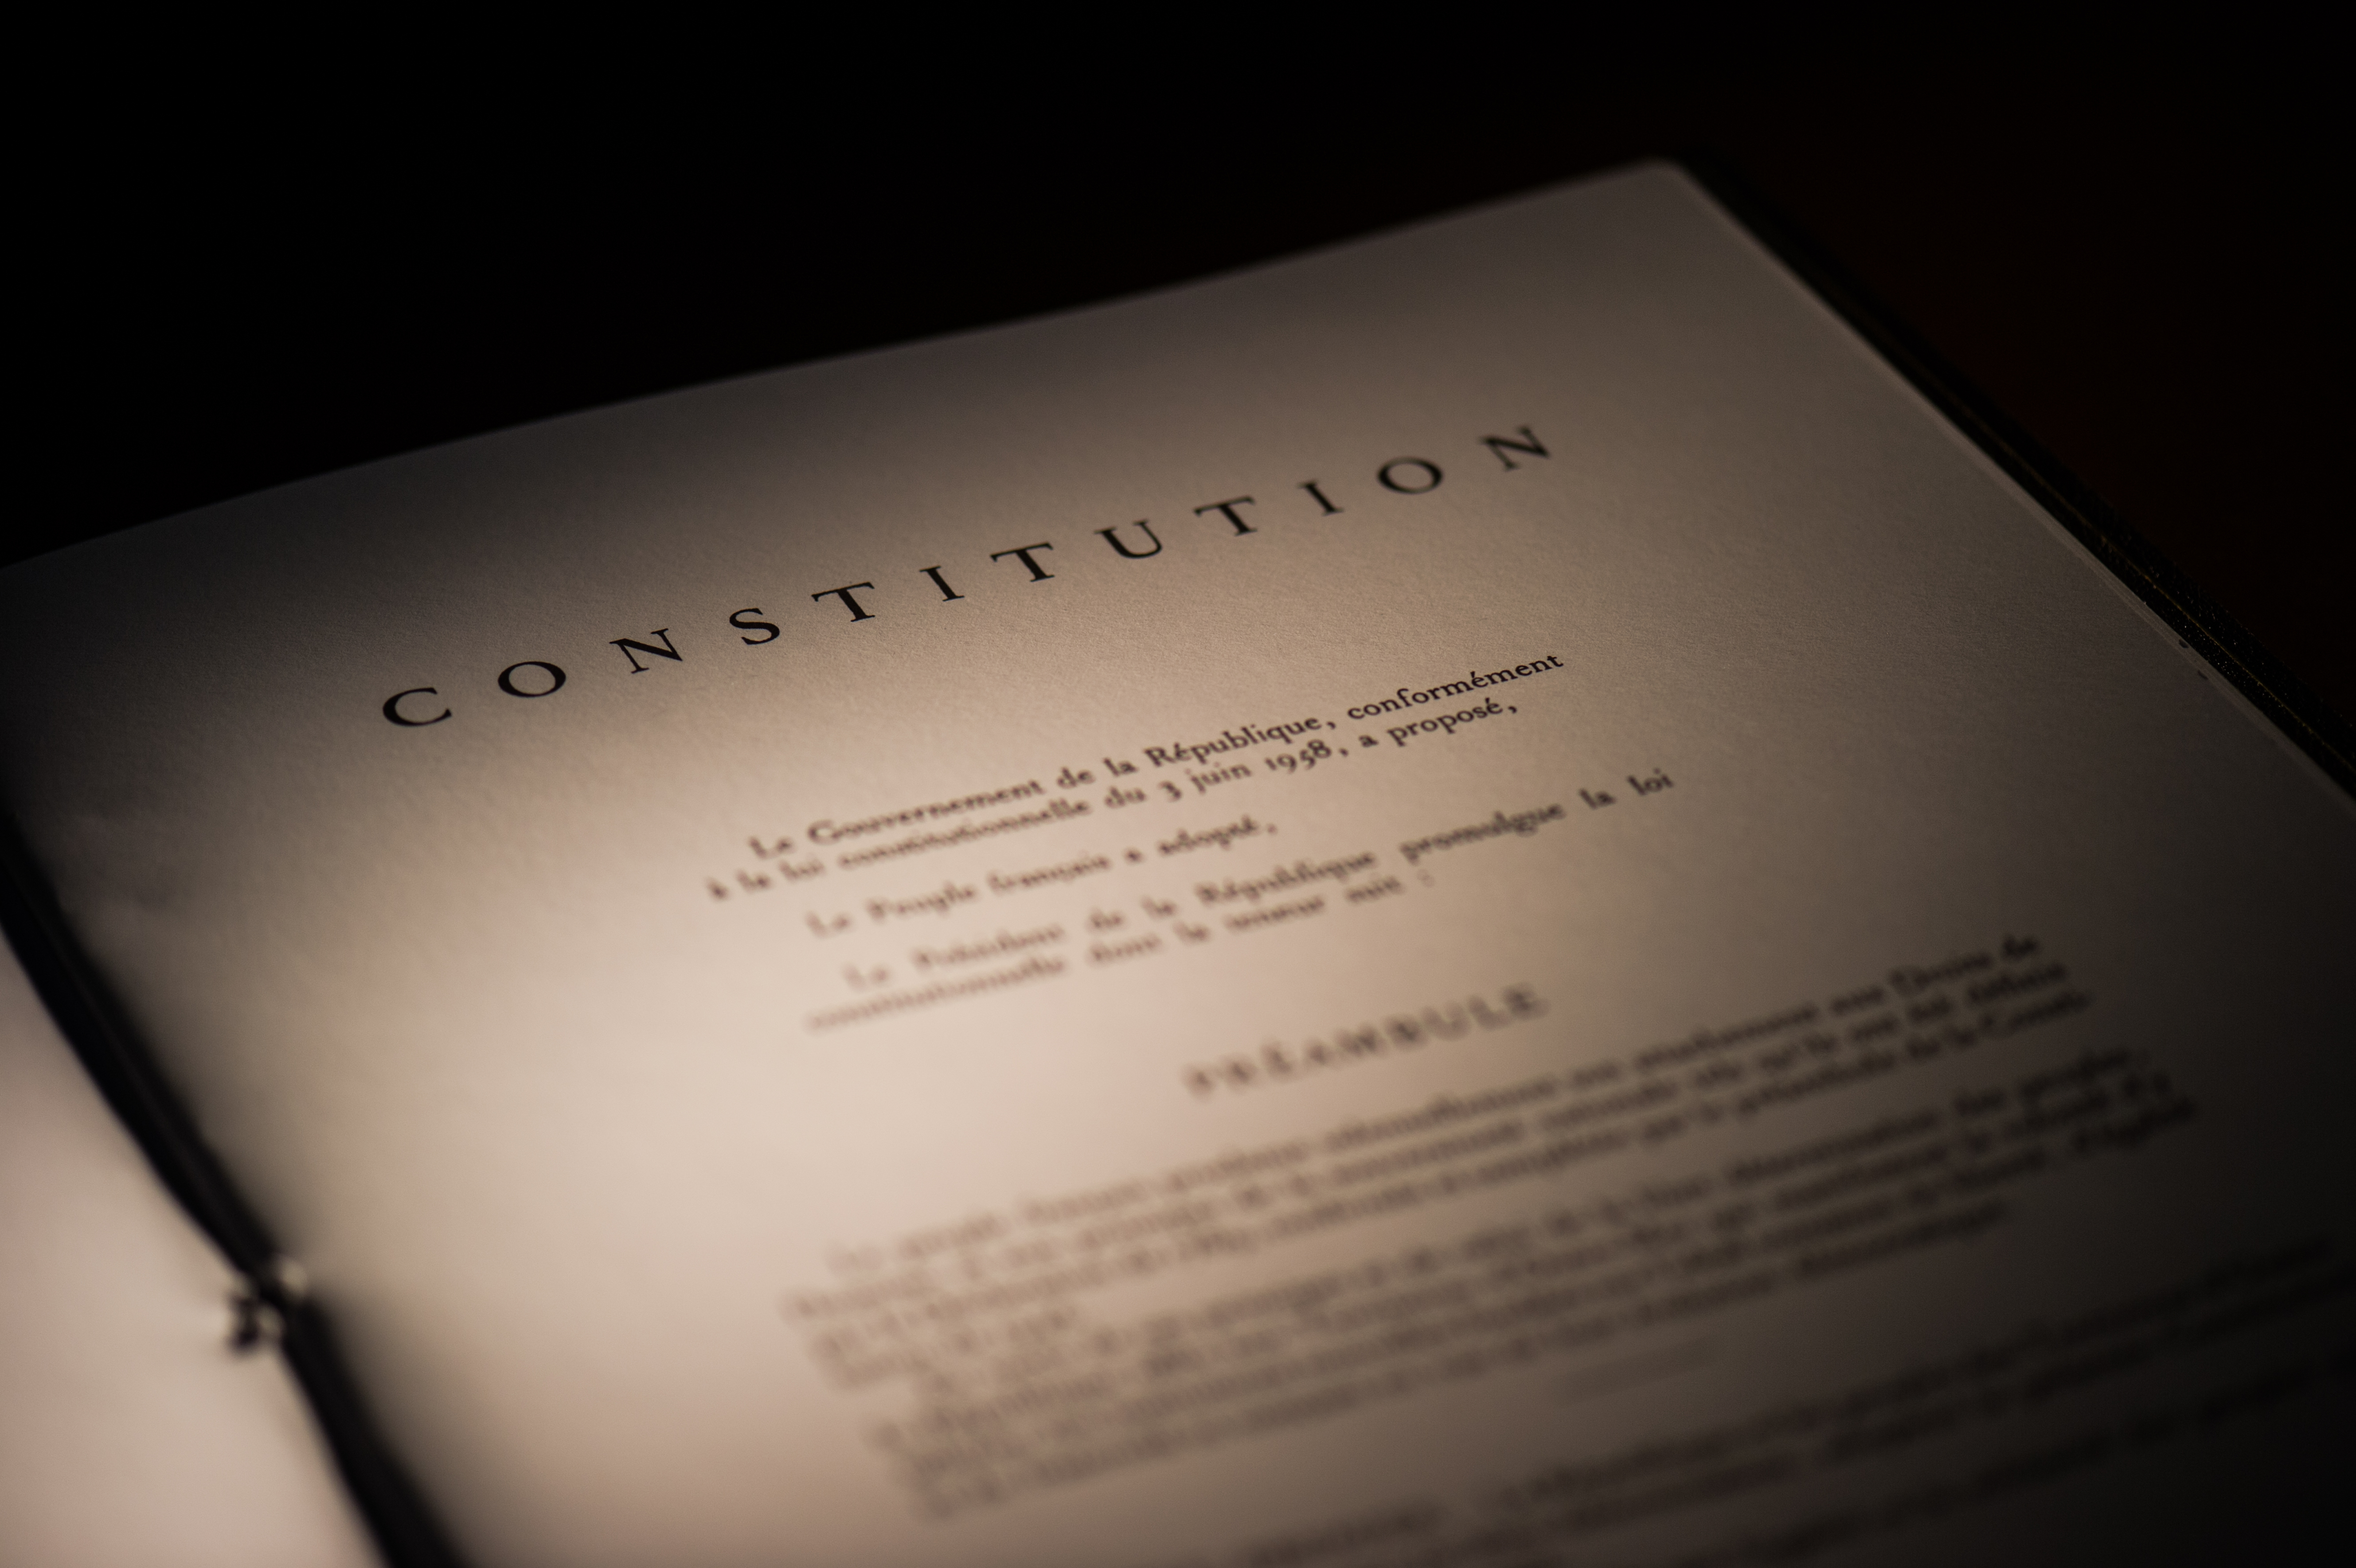 dissertation conseil constitutionnel constitution Search results for: le conseil constitutionnel et la constitution dissertation writing click here for more information.